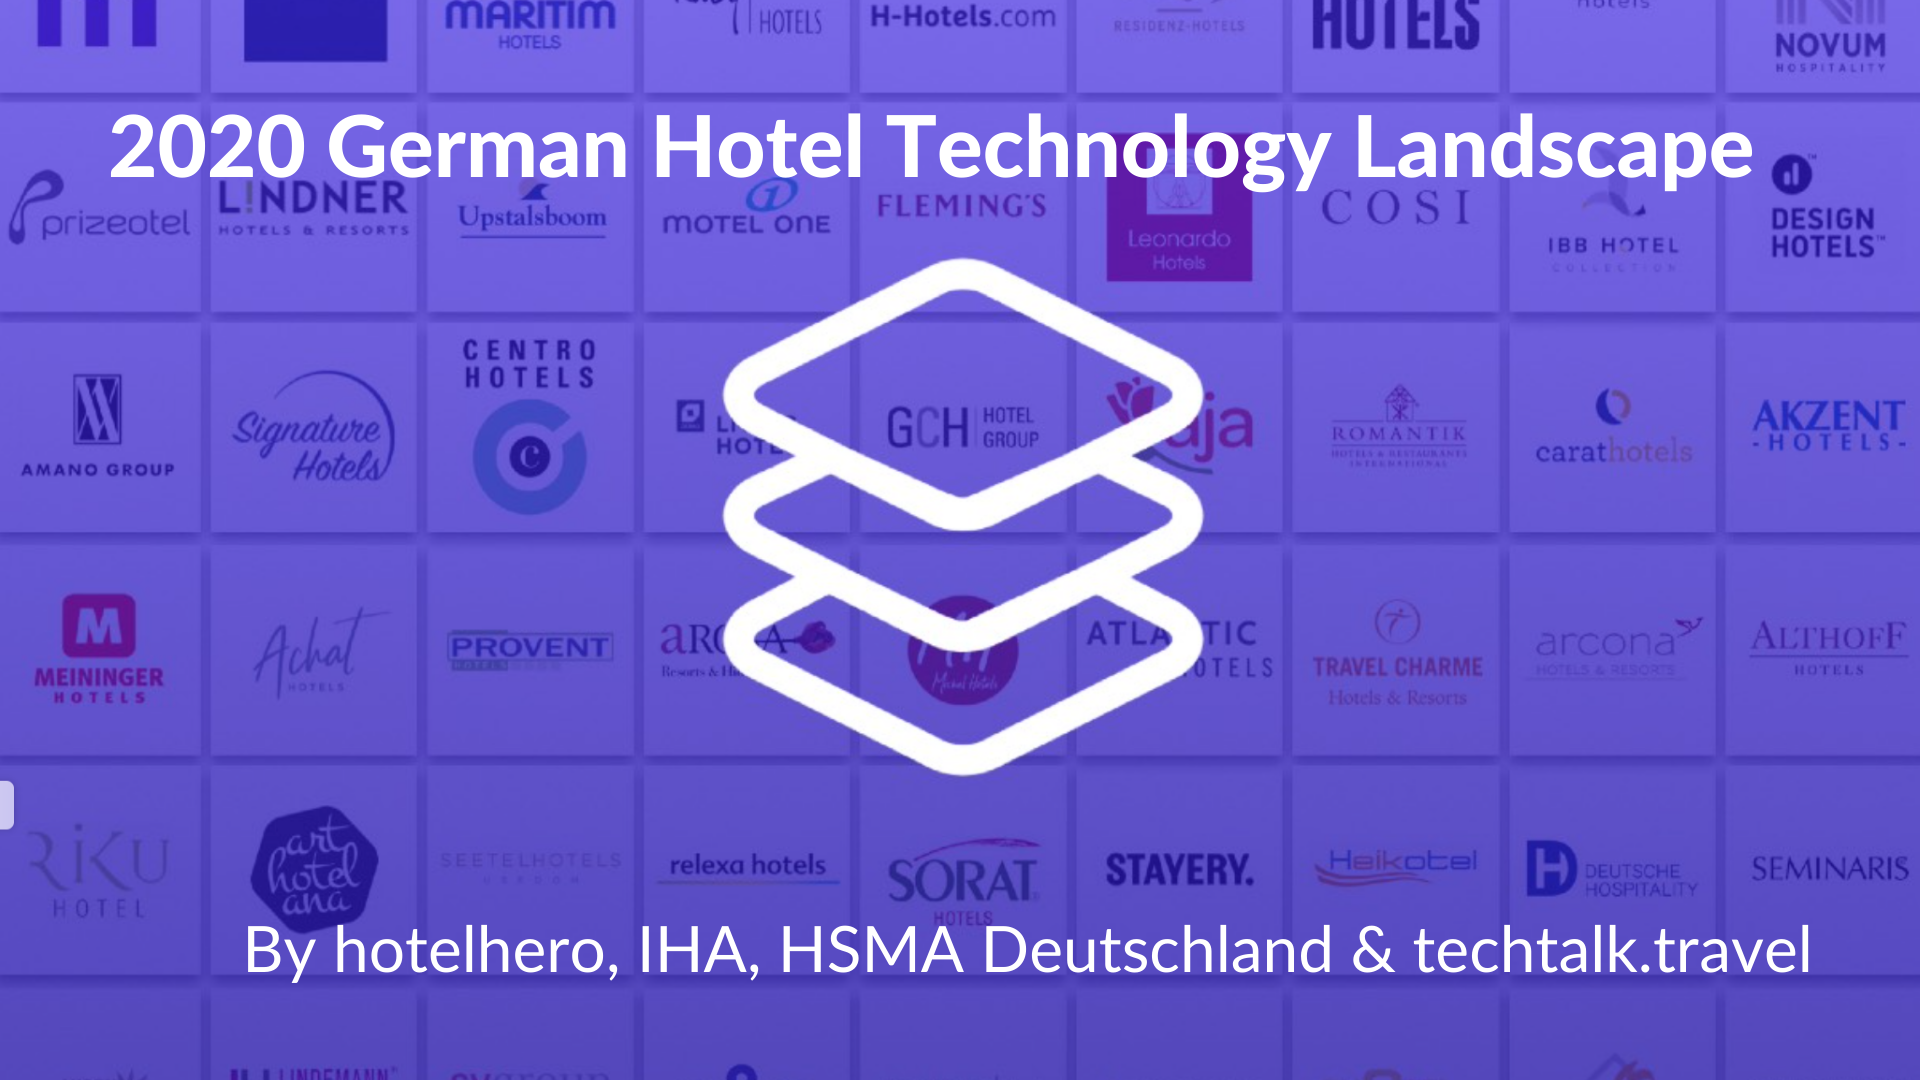 2020 German Hotel Technology Landscape